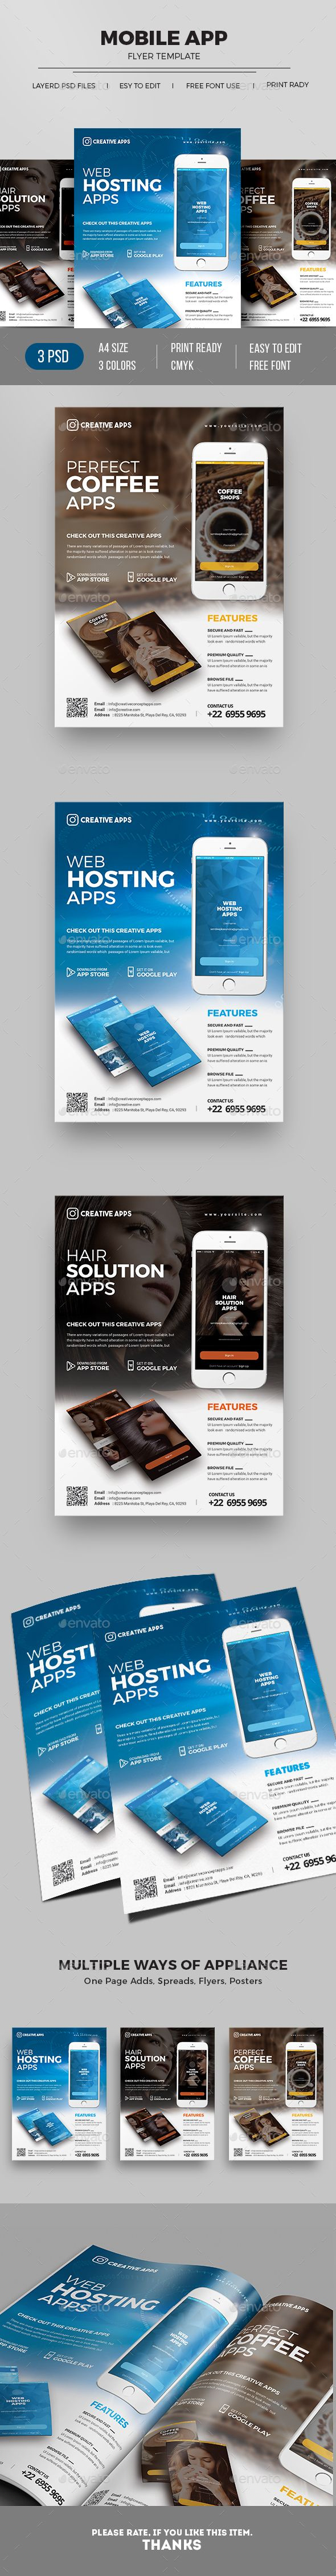 Mobile App Flyer Mobile App Promotion Flyer Template, is perfectly suitable for promoting your mobile application, android app, ios app or any other application software. You can also use this template in multipurpose advertising purpose like newspaper ad or magazine ad.